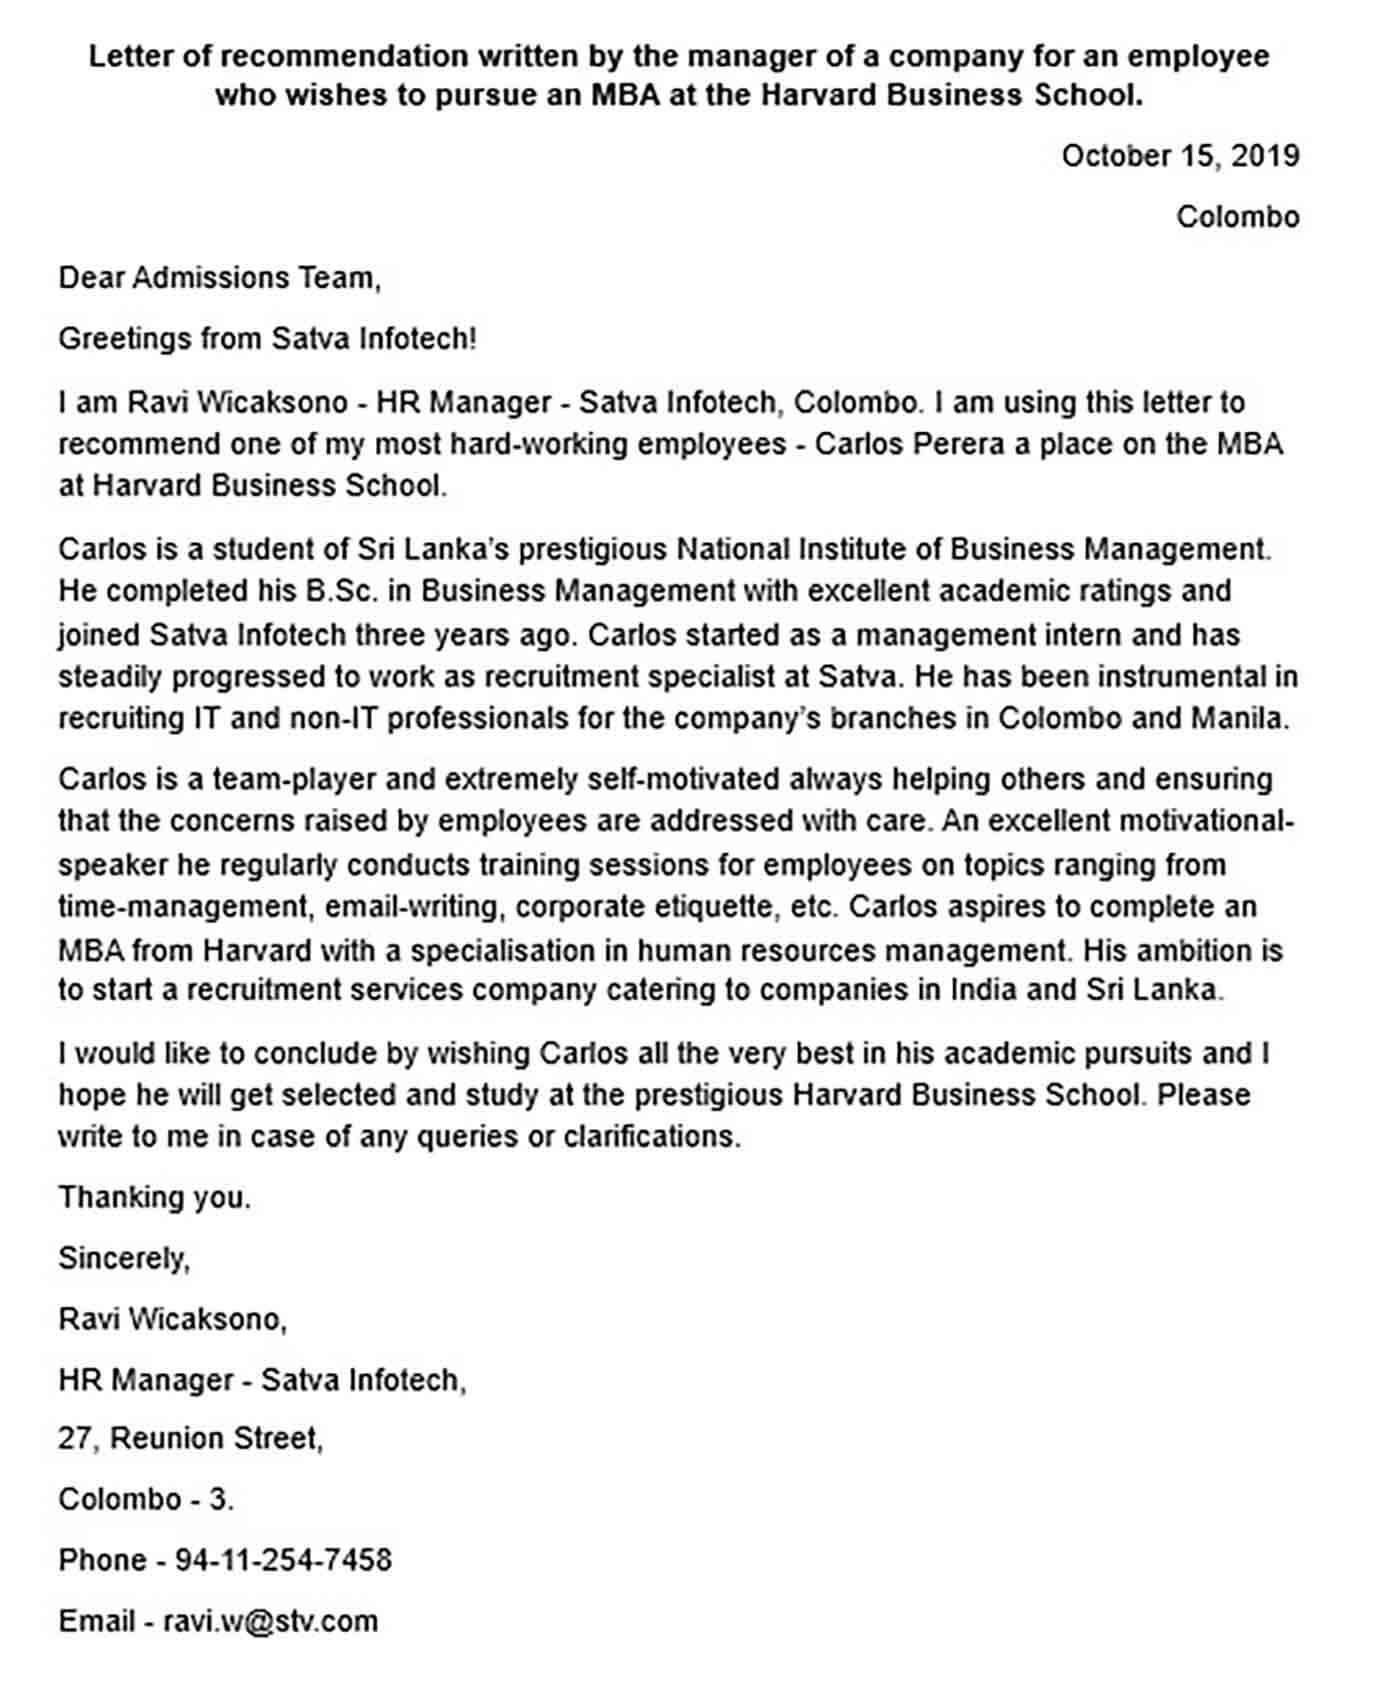 Recommendation Letter for MBA Admission